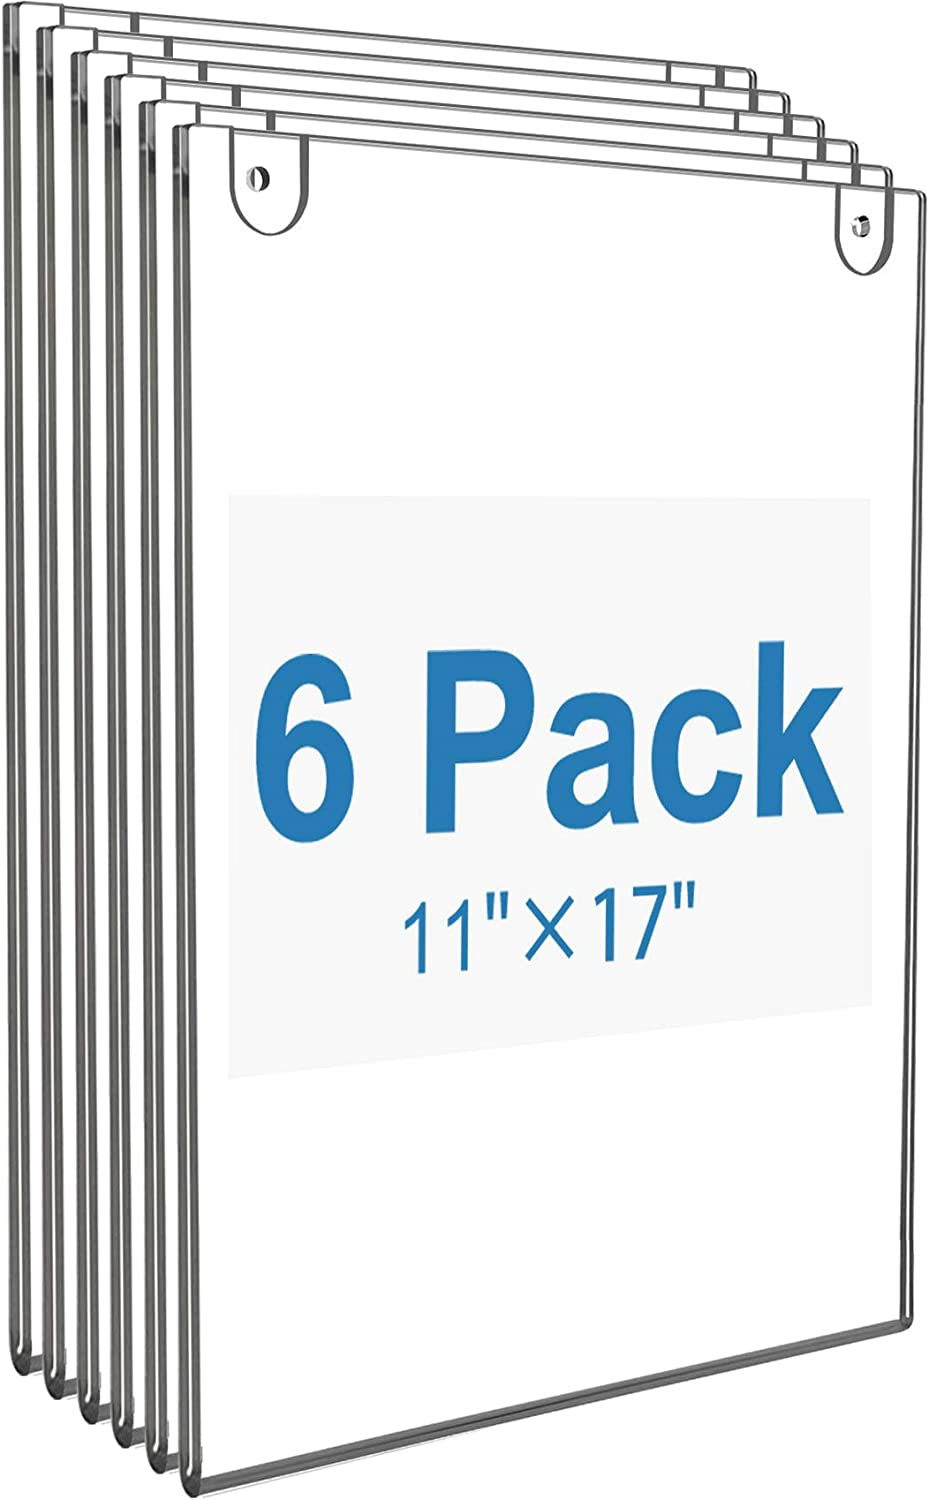 MaxGear Acrylic Sign Holder 8.5 x 11 Sign Holders Plastic Frames Clear Frame 8.5x11 Wall Mount Sign Holder Wall Sign Holder with 3M Tape Adhesive Poster Document Flyer for Plexiglass 3 Pack Door